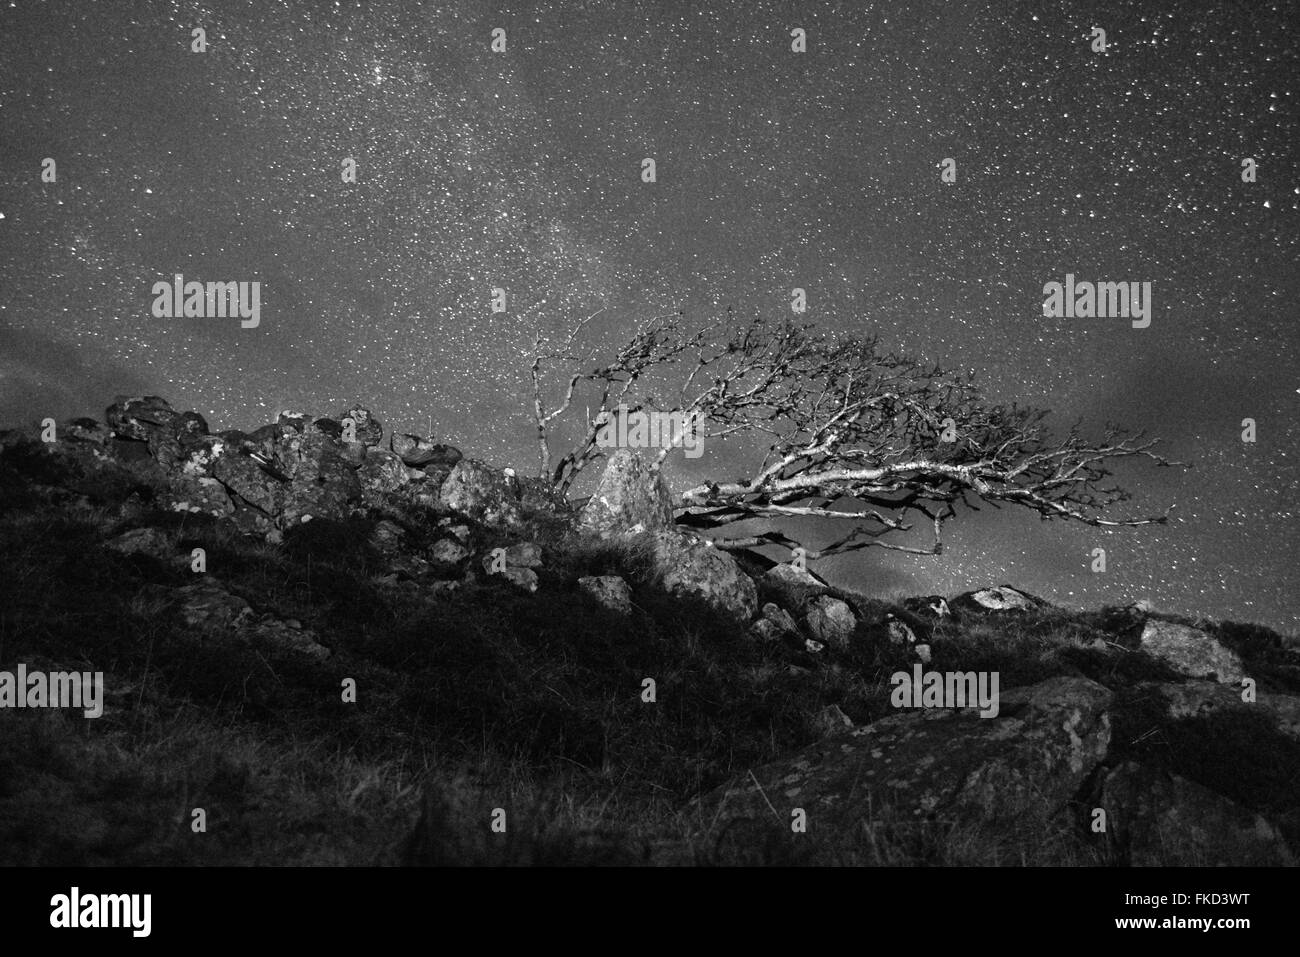 Wind-blown Rowan tree (Sorbus aucuparia) against a very starry sky. Isle of Lewis. Scotland. Black and White - Stock Image